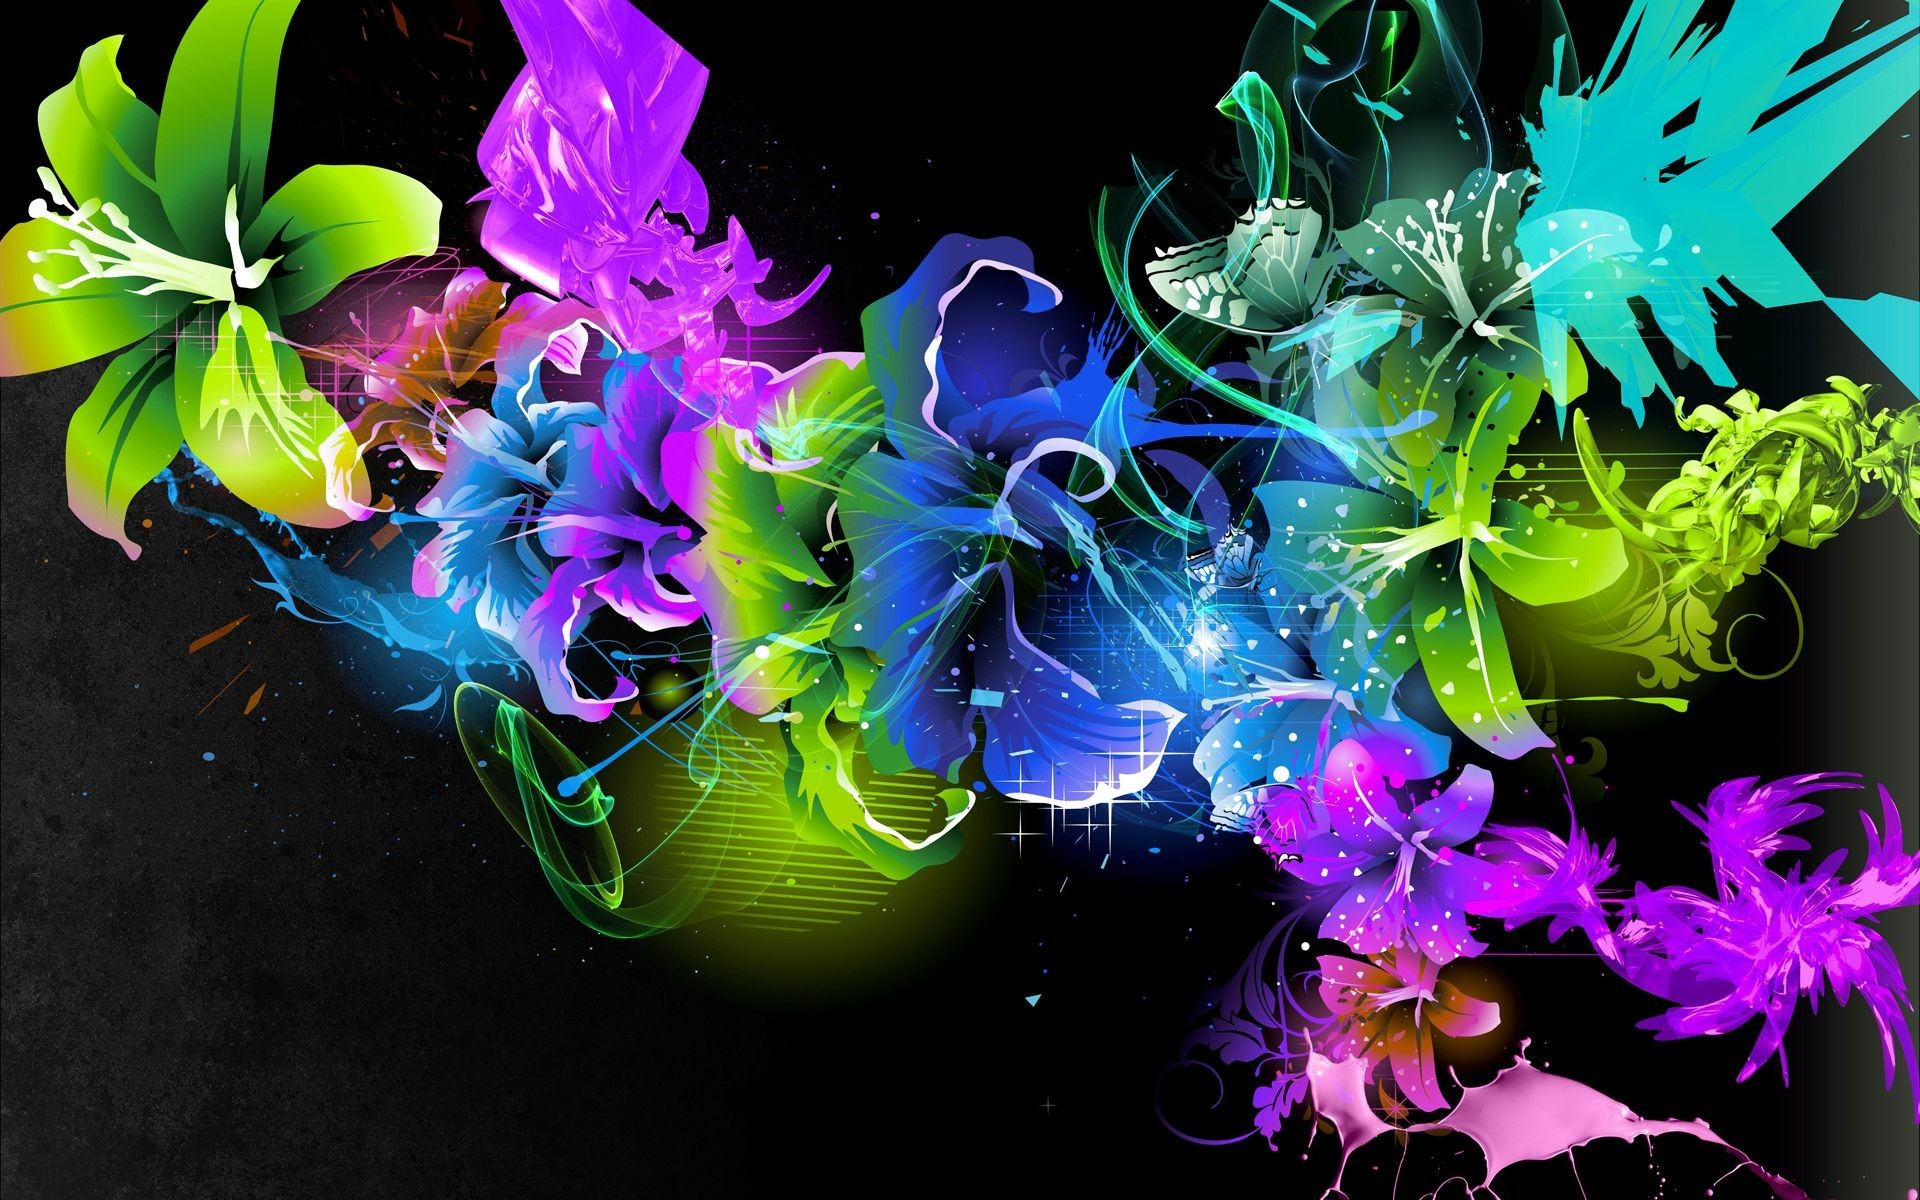 Abstract Art Wallpaper 1 Download Free HD Backgrounds For Desktop